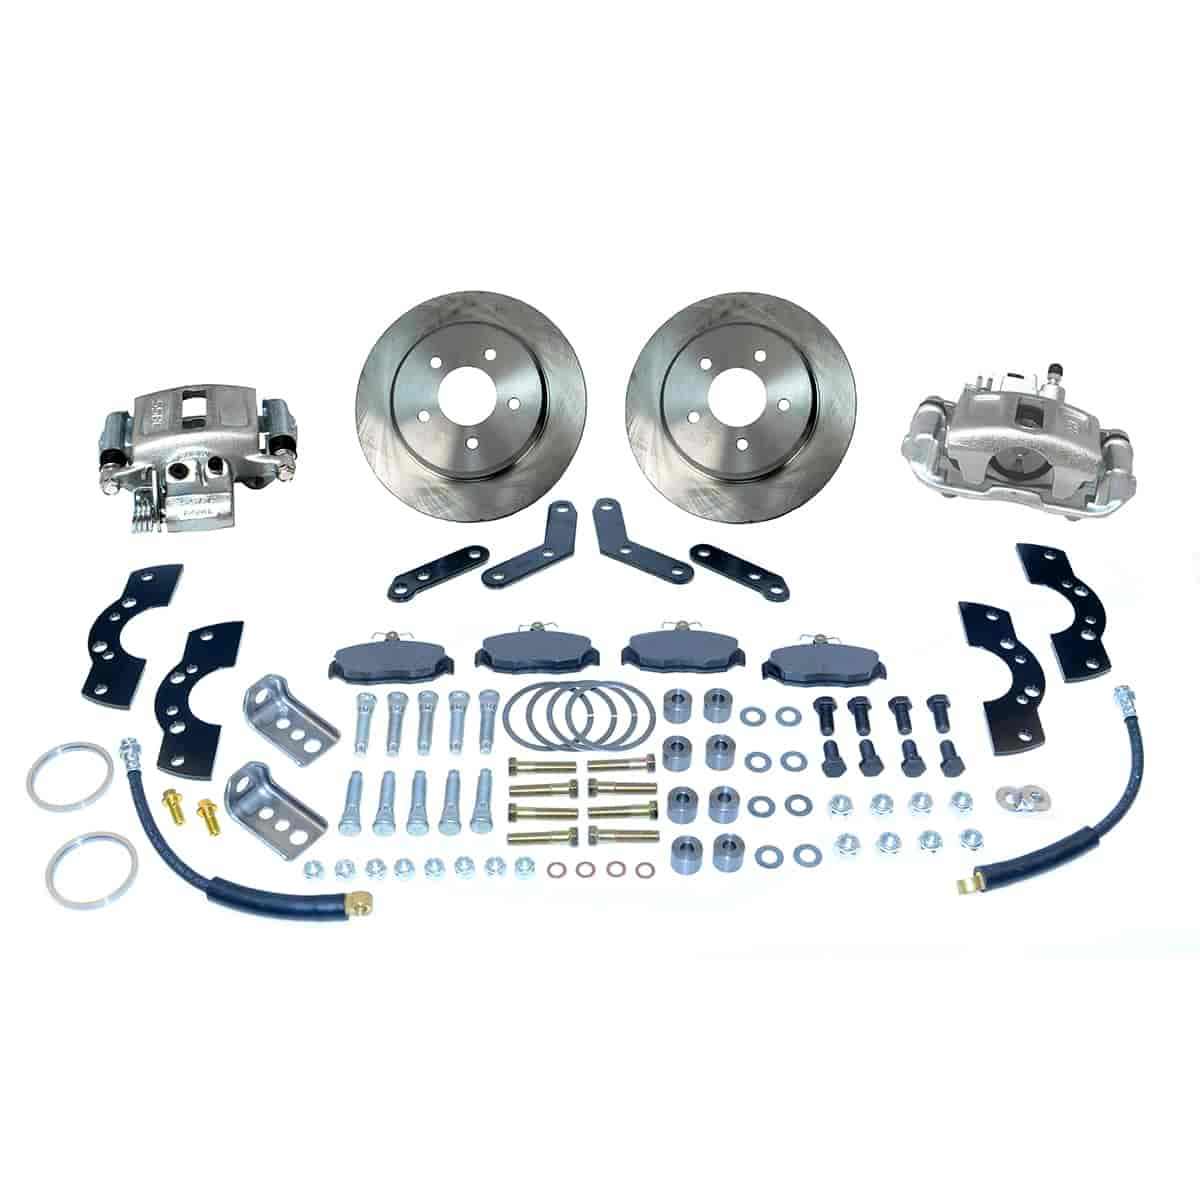 Stainless Steel Brakes A118 - Stainless Steel Brakes Single Piston Rear Drum to Disc Brake Conversion Kits